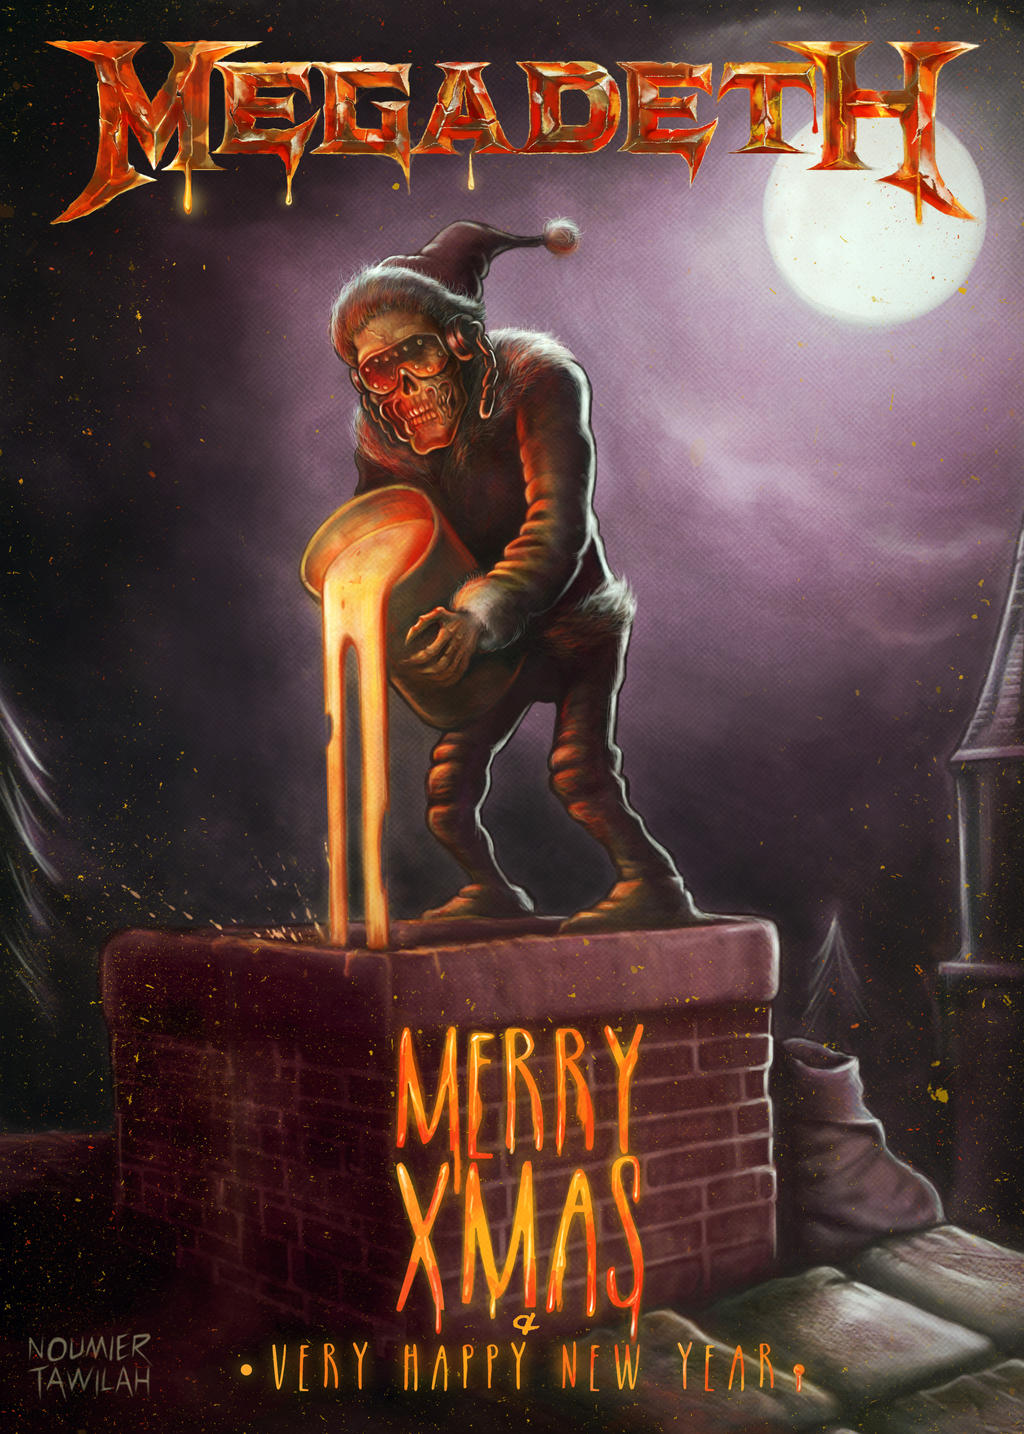 Megadeth Christmas Card 2015 by Noumier